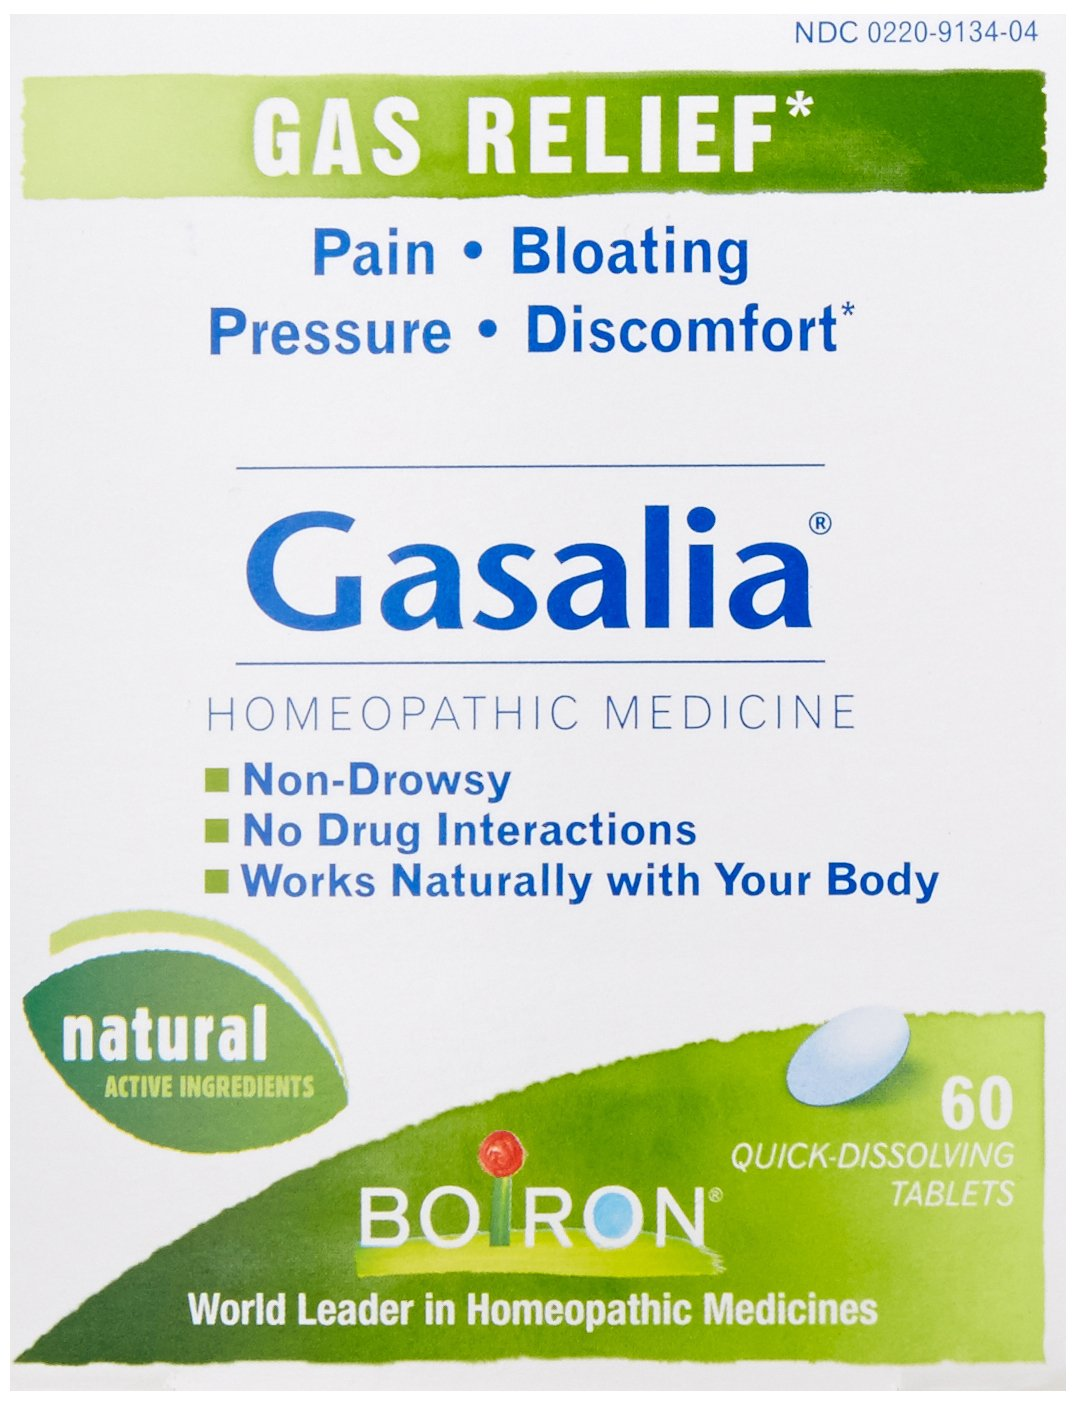 Boiron Gasalia, 60 Tablets, Homeopathic Medicine for Gas Relief (Pack of 3)